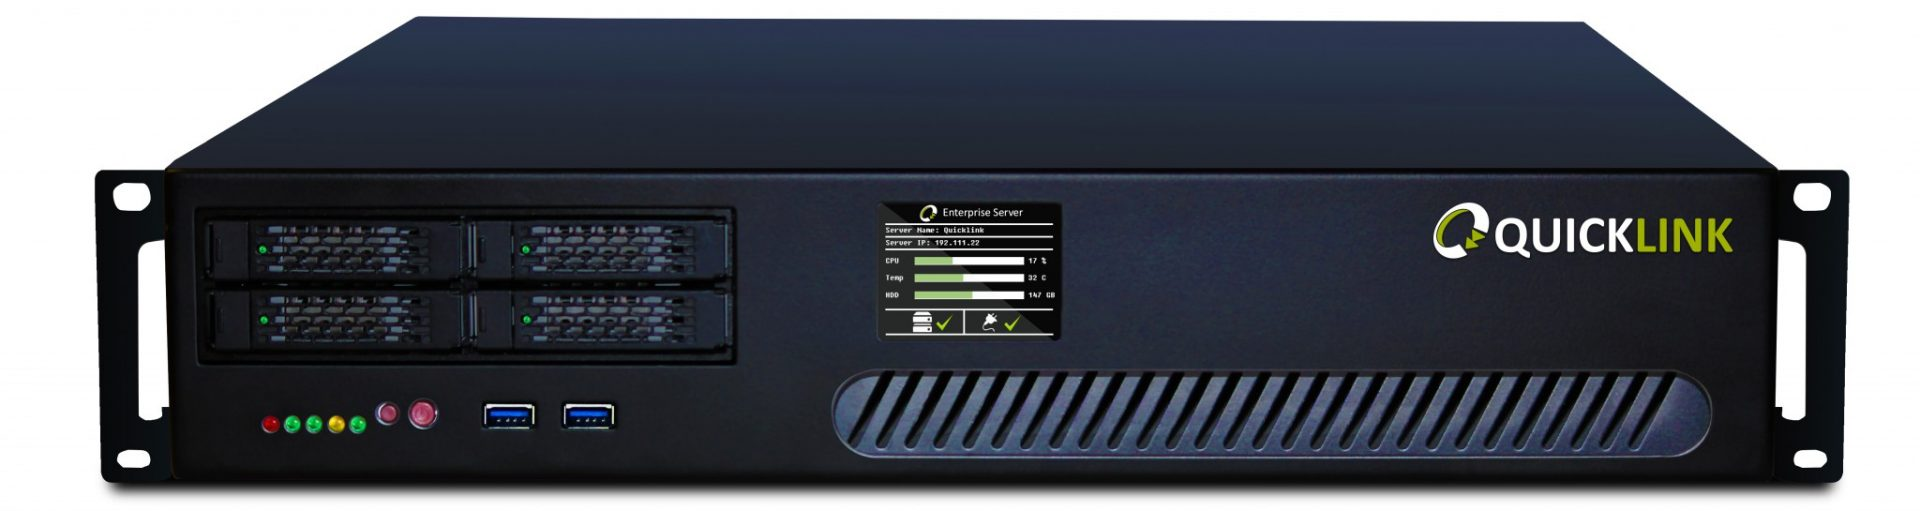 the-quicklink-enterprise-server-with-ears